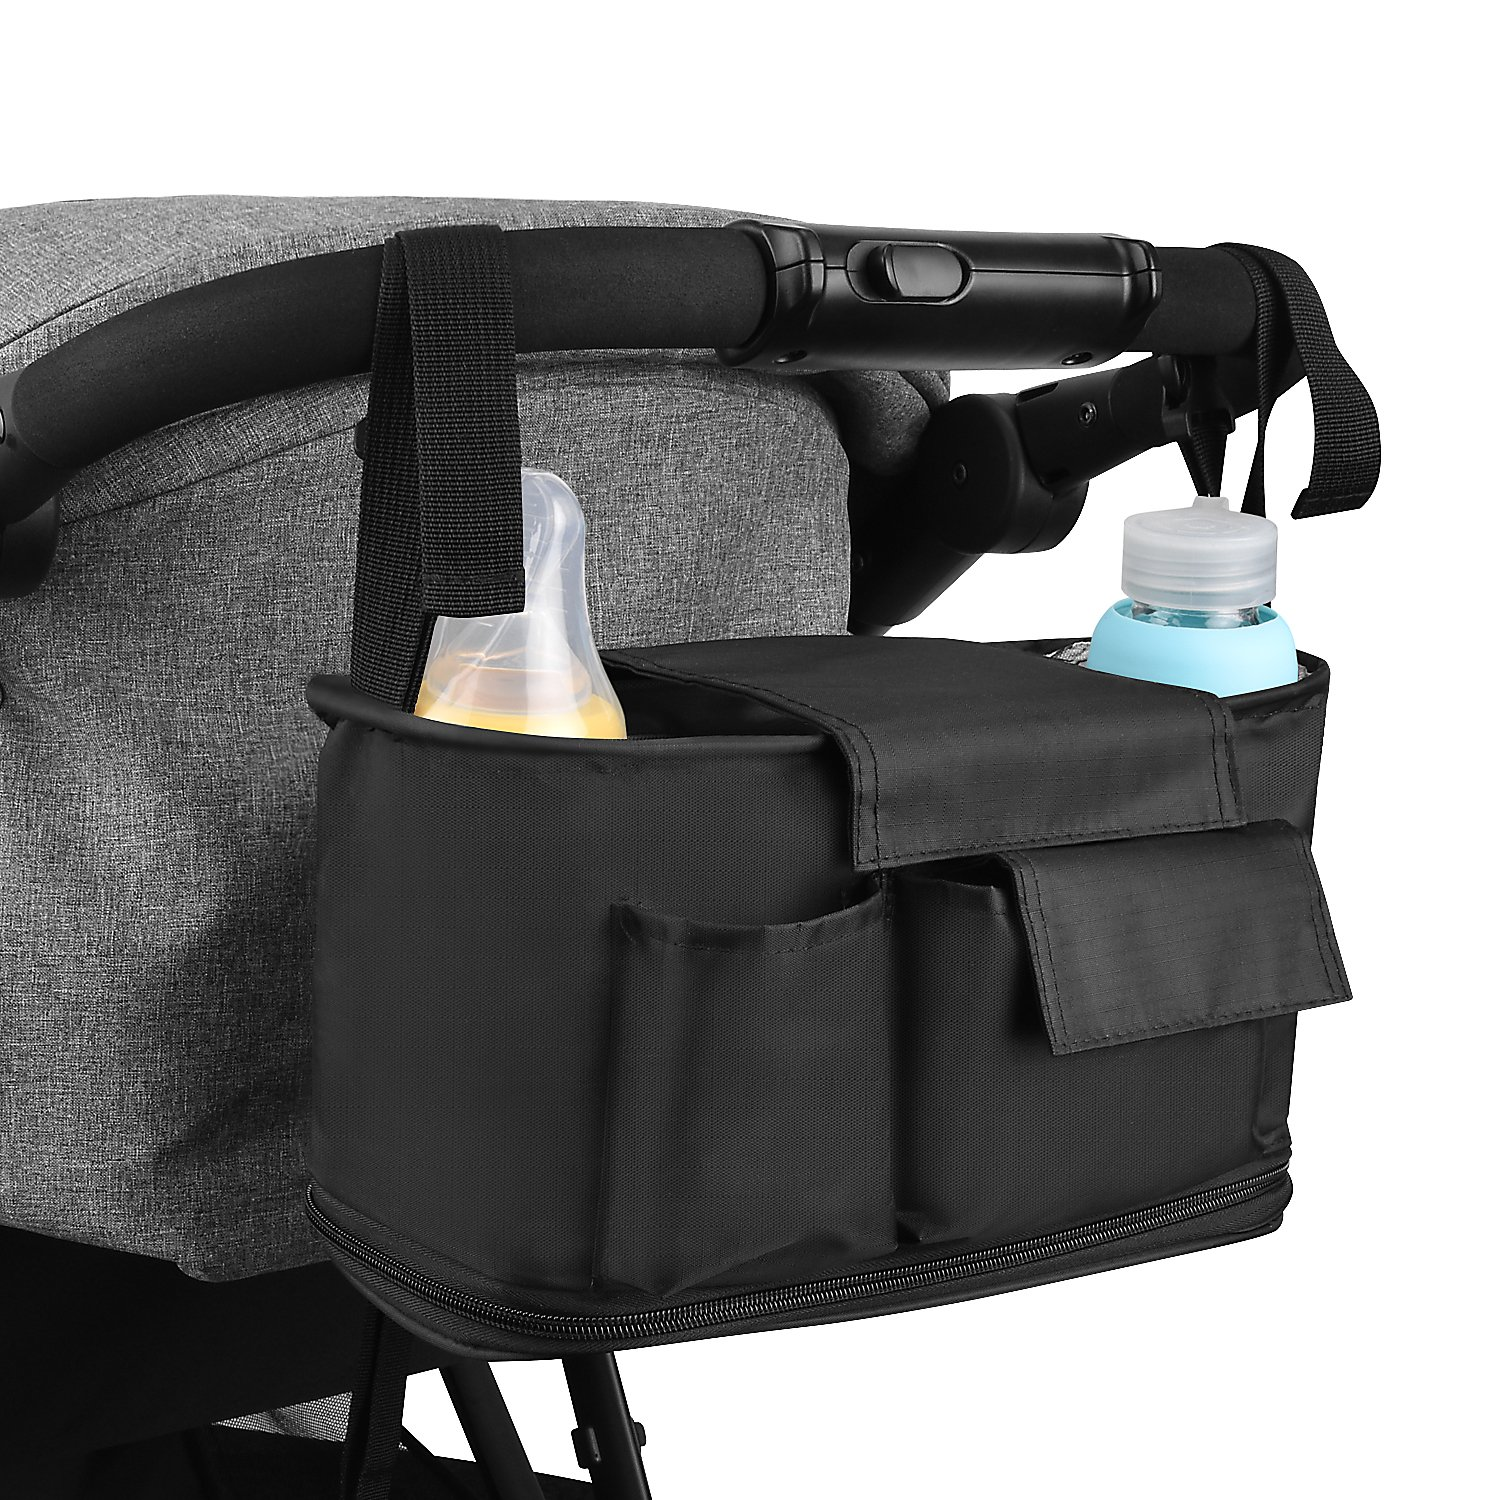 ROOYA Baby Stroller Organizer Premium Deep Diaper Bag with 2 Cup Holders and Shoulder Strap, Extra Storage Space for Toys, Diapers, Phones and Towels - Universal Fit All Buggy Pram Stroller & Black